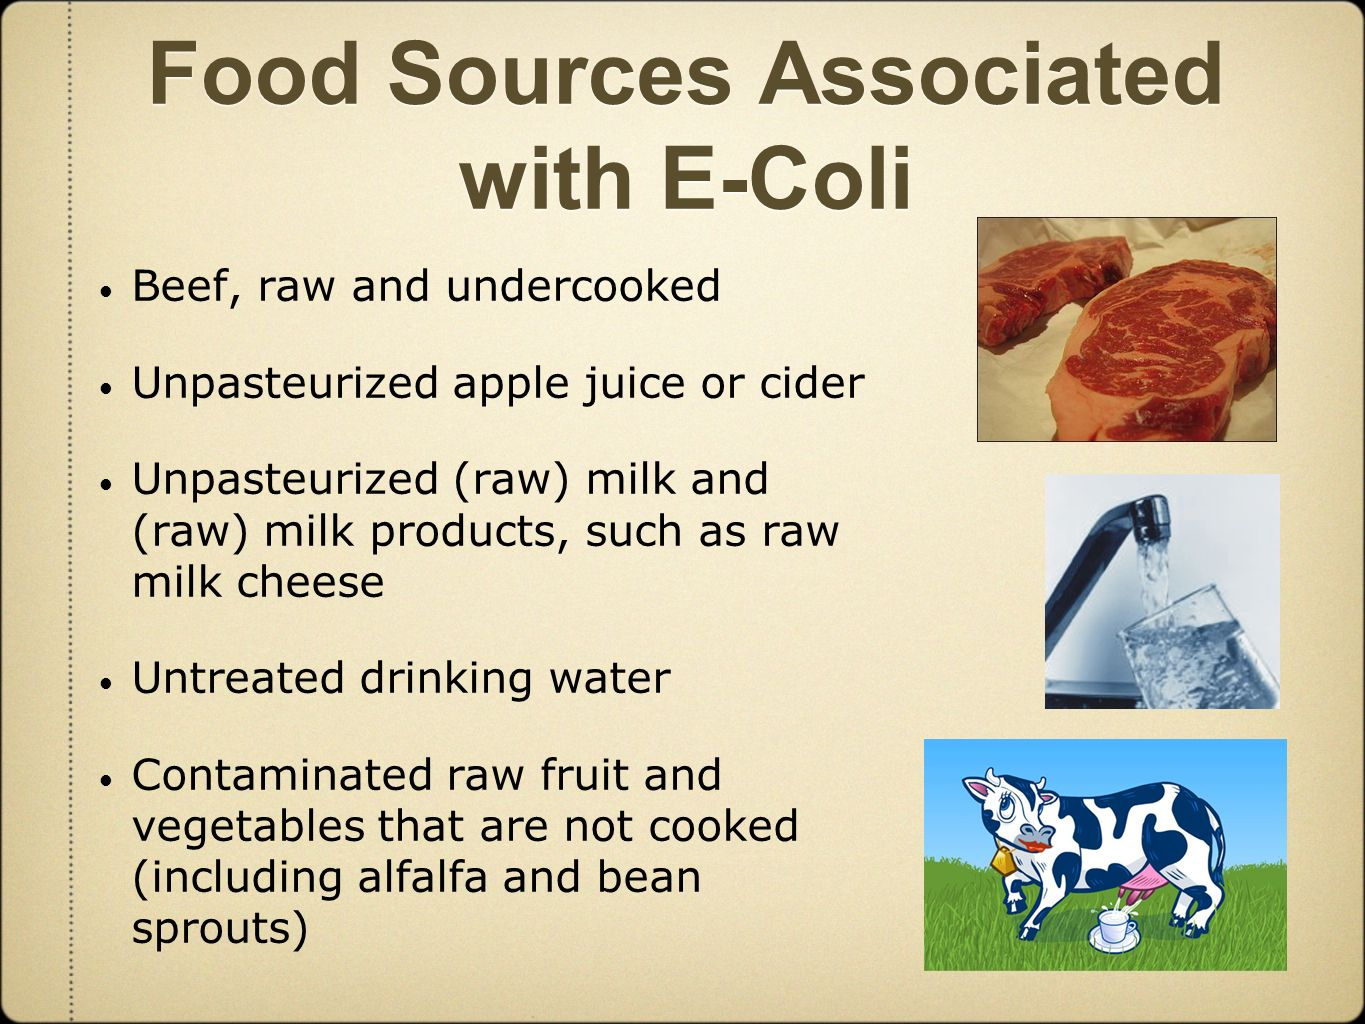 E coli and Food Safety  Features  CDC